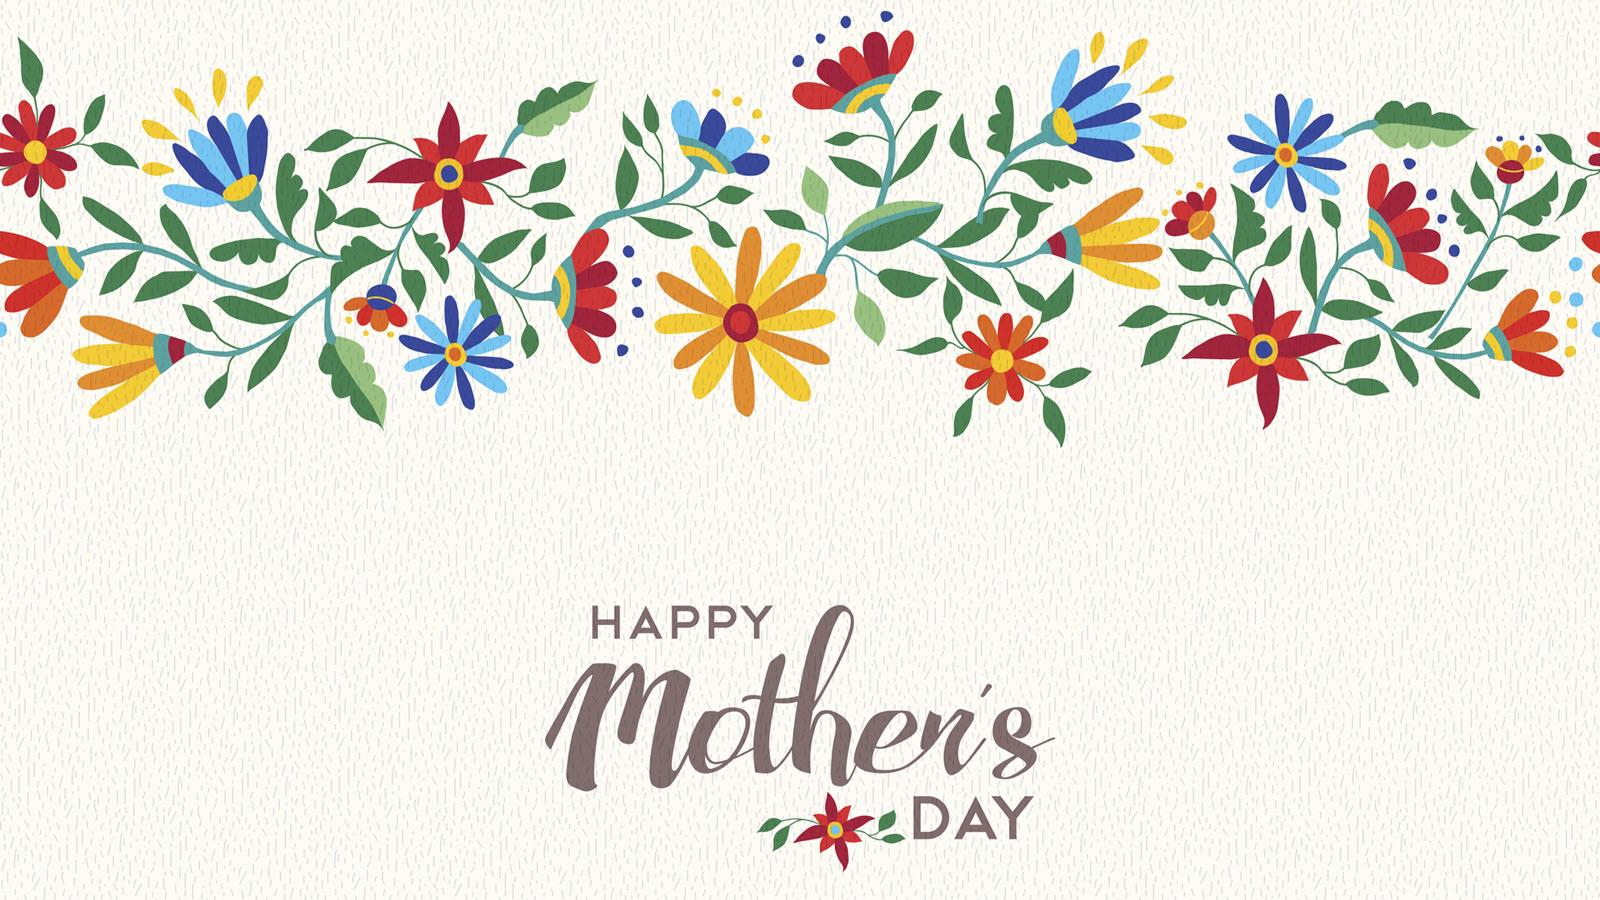 Happy Mother's Day under a floral banner